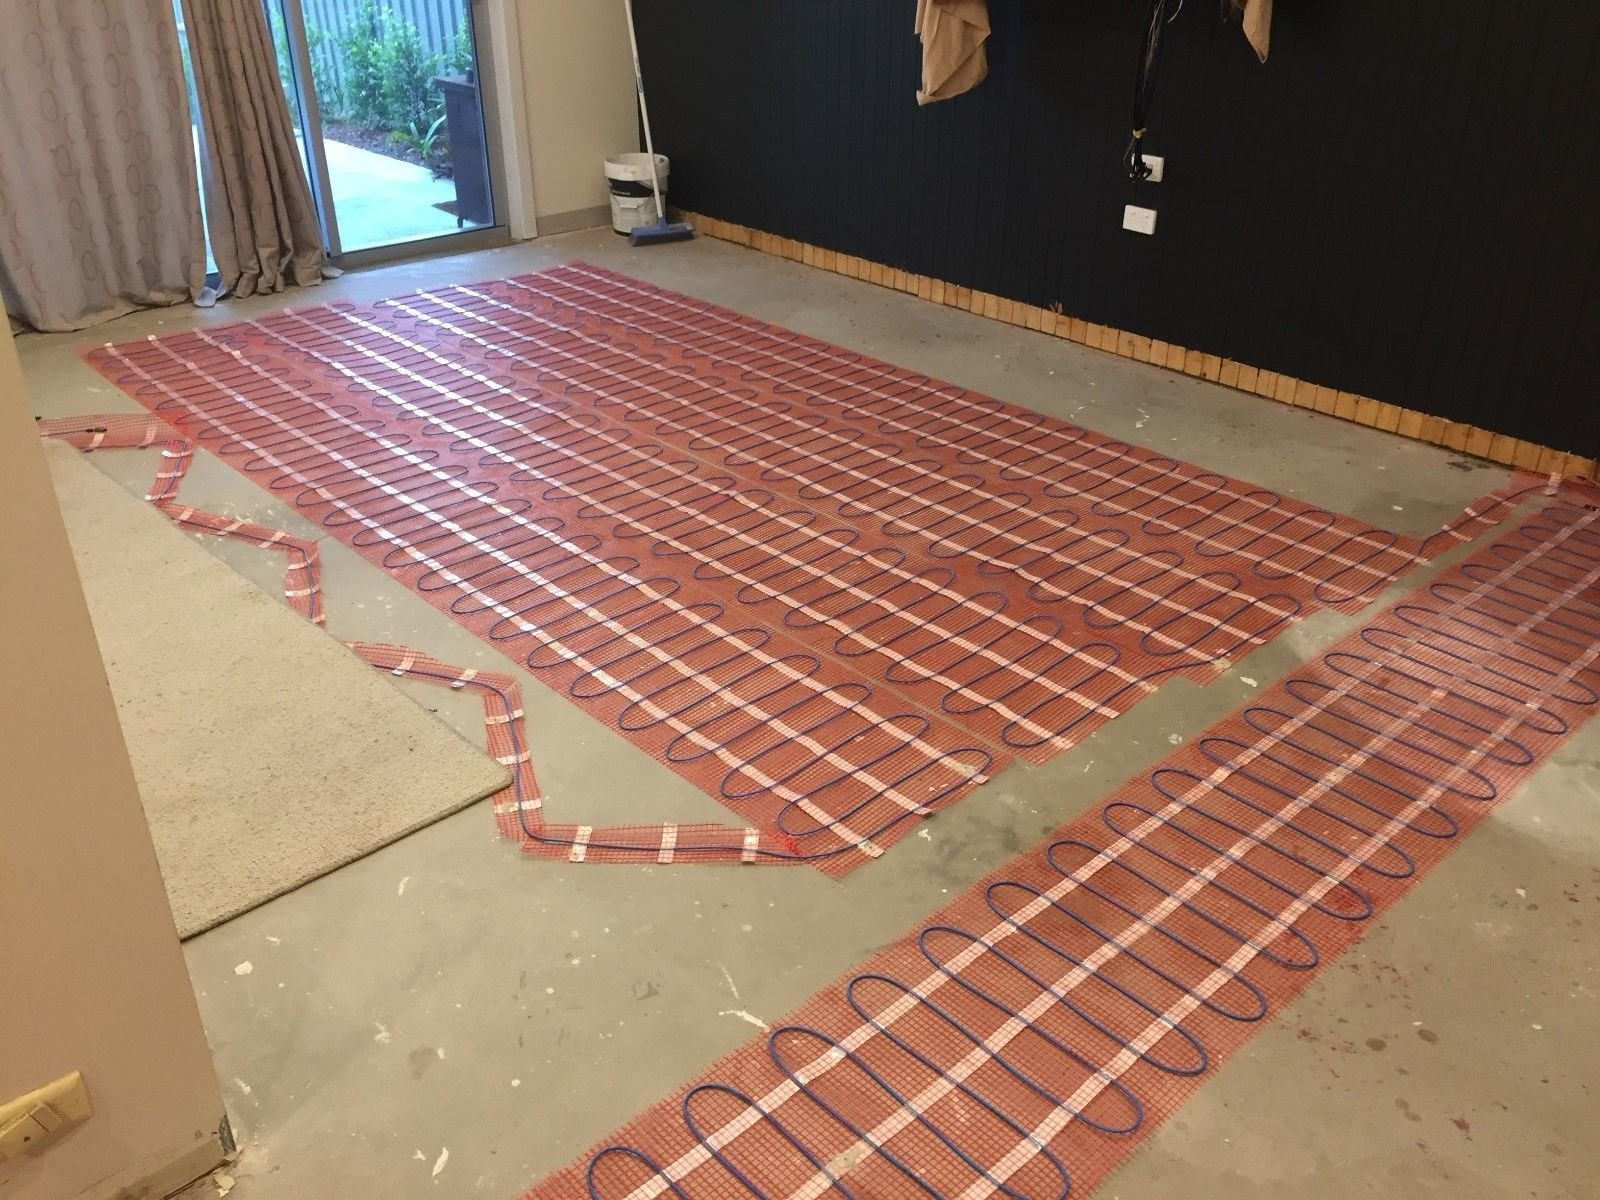 50 sqft SENPHUS 120V Electric Radiant Underfloor Heating System Warm In Tiles Cable Self-adhesive Mat by Senphus (Image #7)